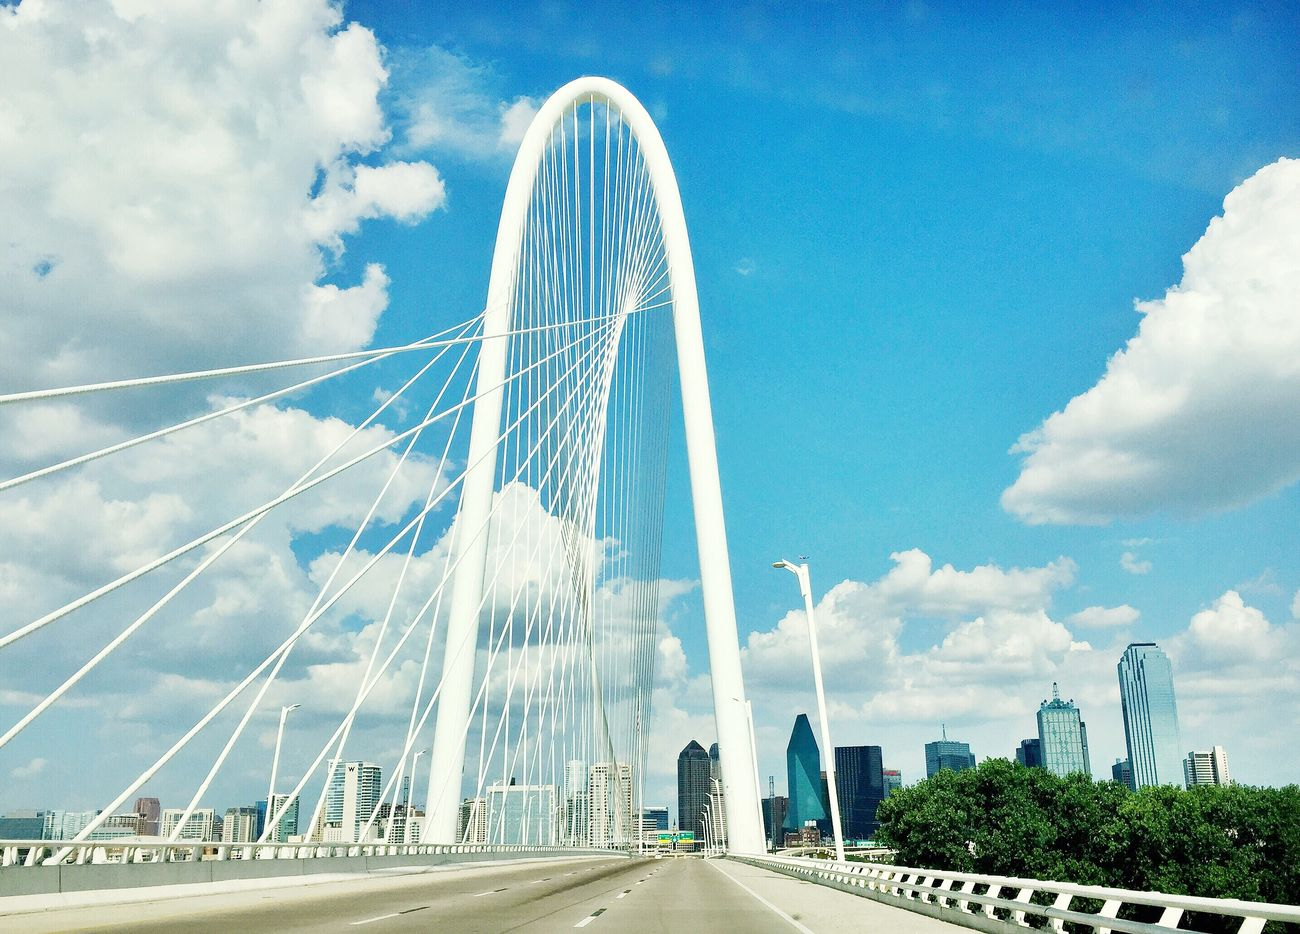 Architecture Bridge - Man Made Structure Transportation Built Structure Suspension Bridge Sky City Highway Car Engineering Road Connection Road Marking The Way Forward Travel Destinations Cable-stayed Bridge Famous Place Modern Tourism City Life First Eyeem Photo